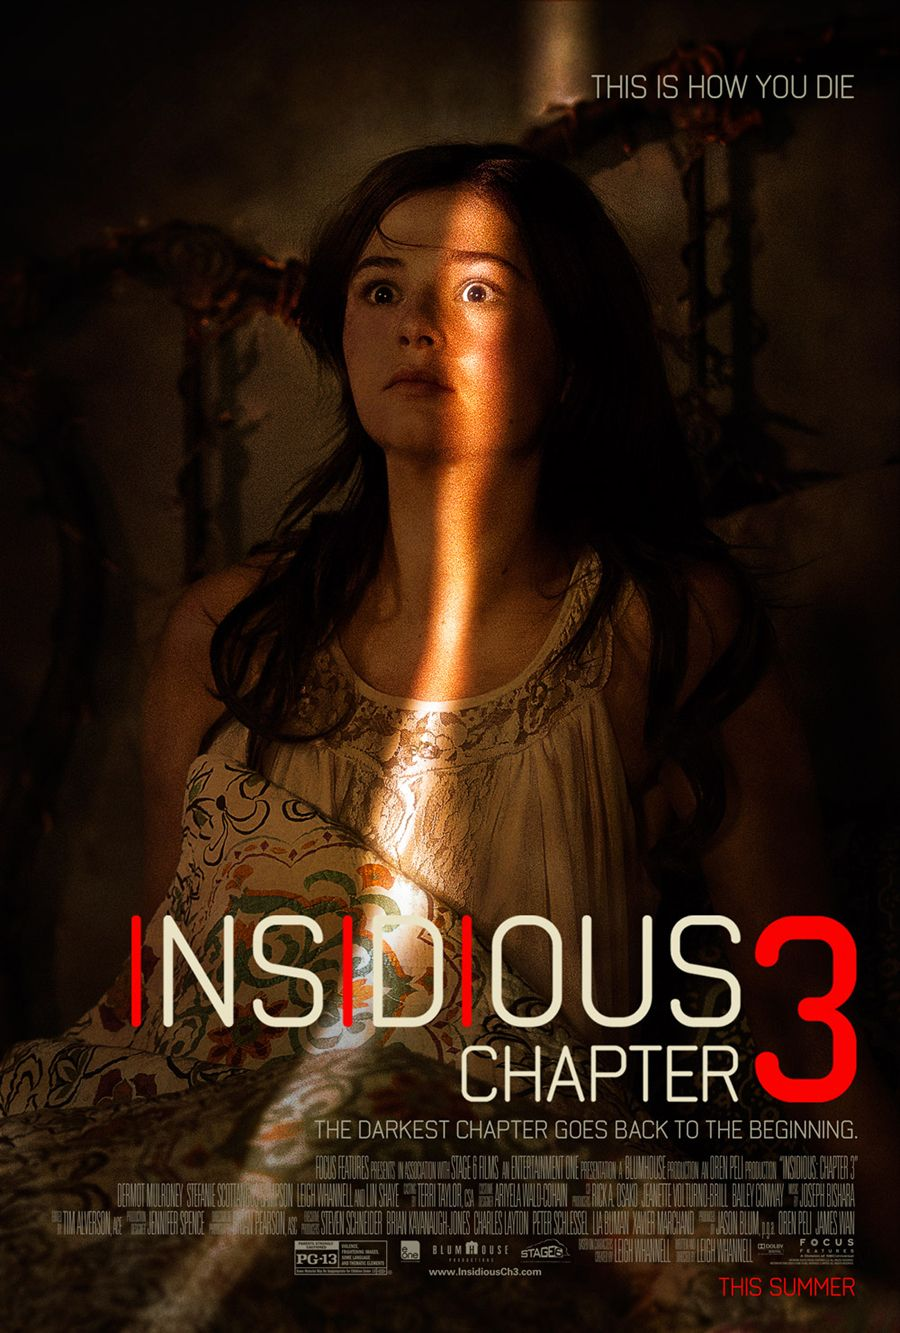 Insidious: Chapter 3 (2015) by Leigh Whannell